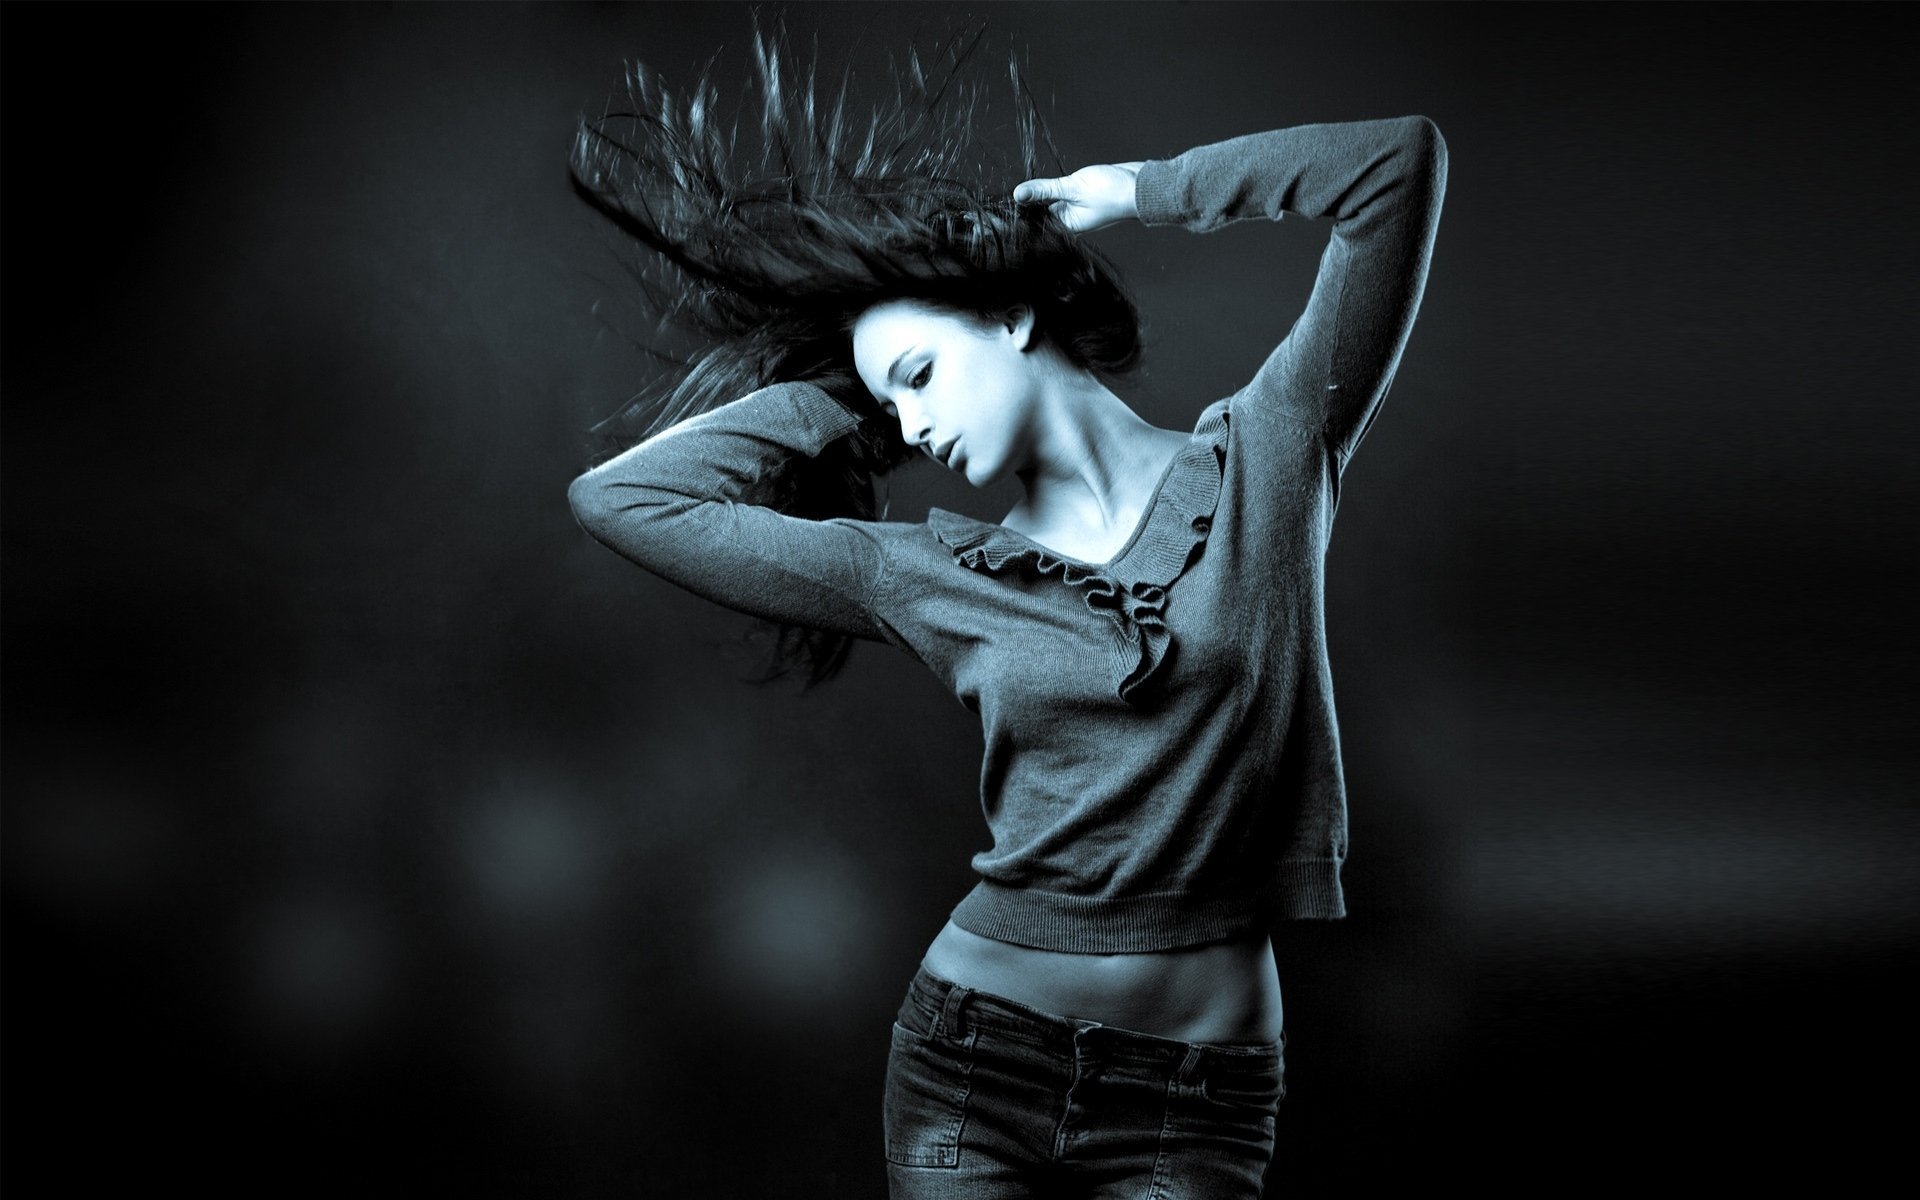 3d Girl Dance Hd Wallpapers: Cool Background Wallpapers For Girls